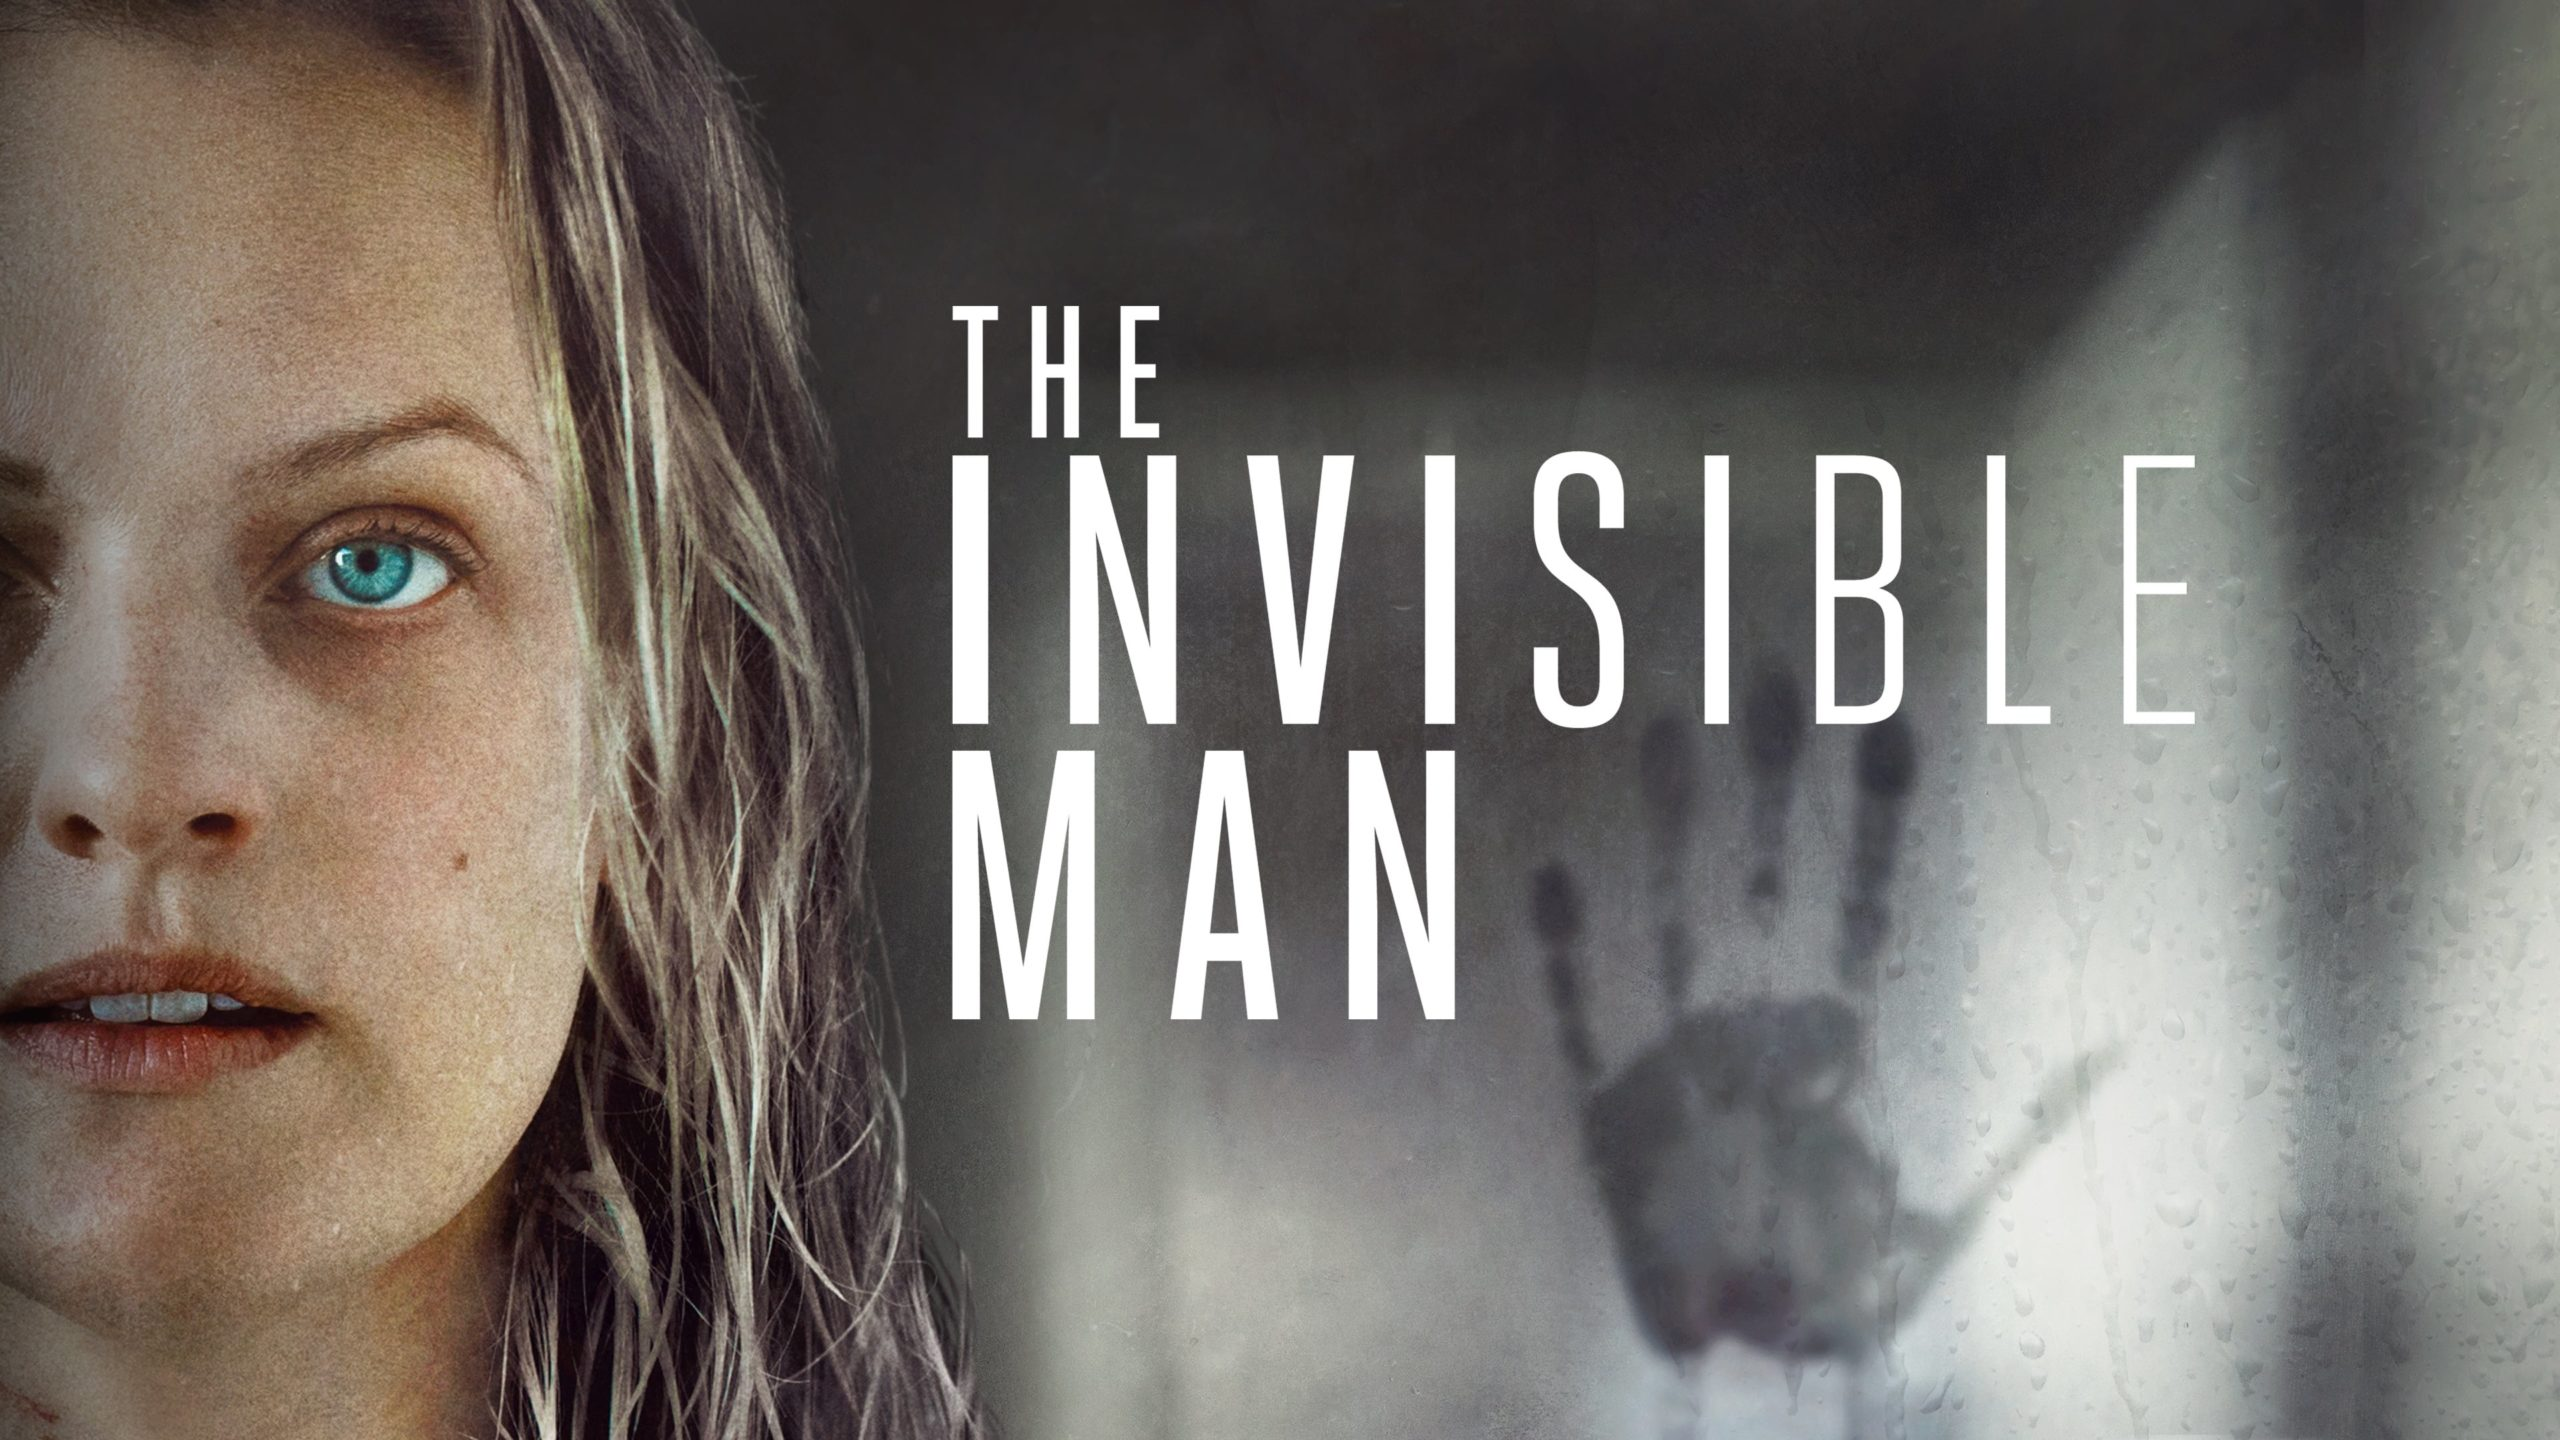 'The Invisible Man' 2020 movie poster